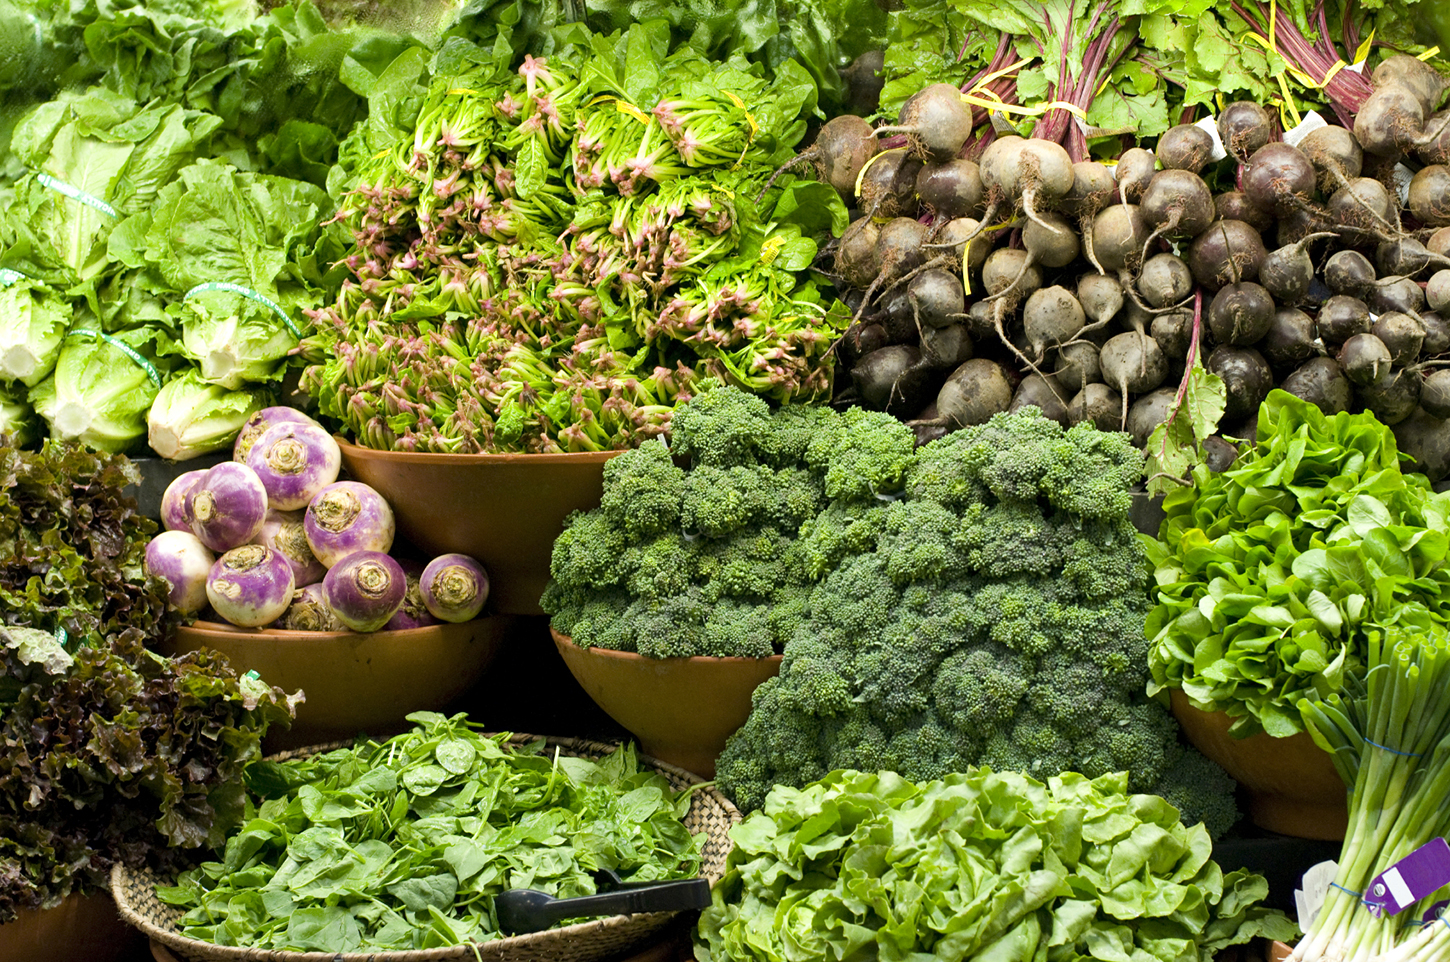 most-nutrient-dense-leafy-greens-for-health